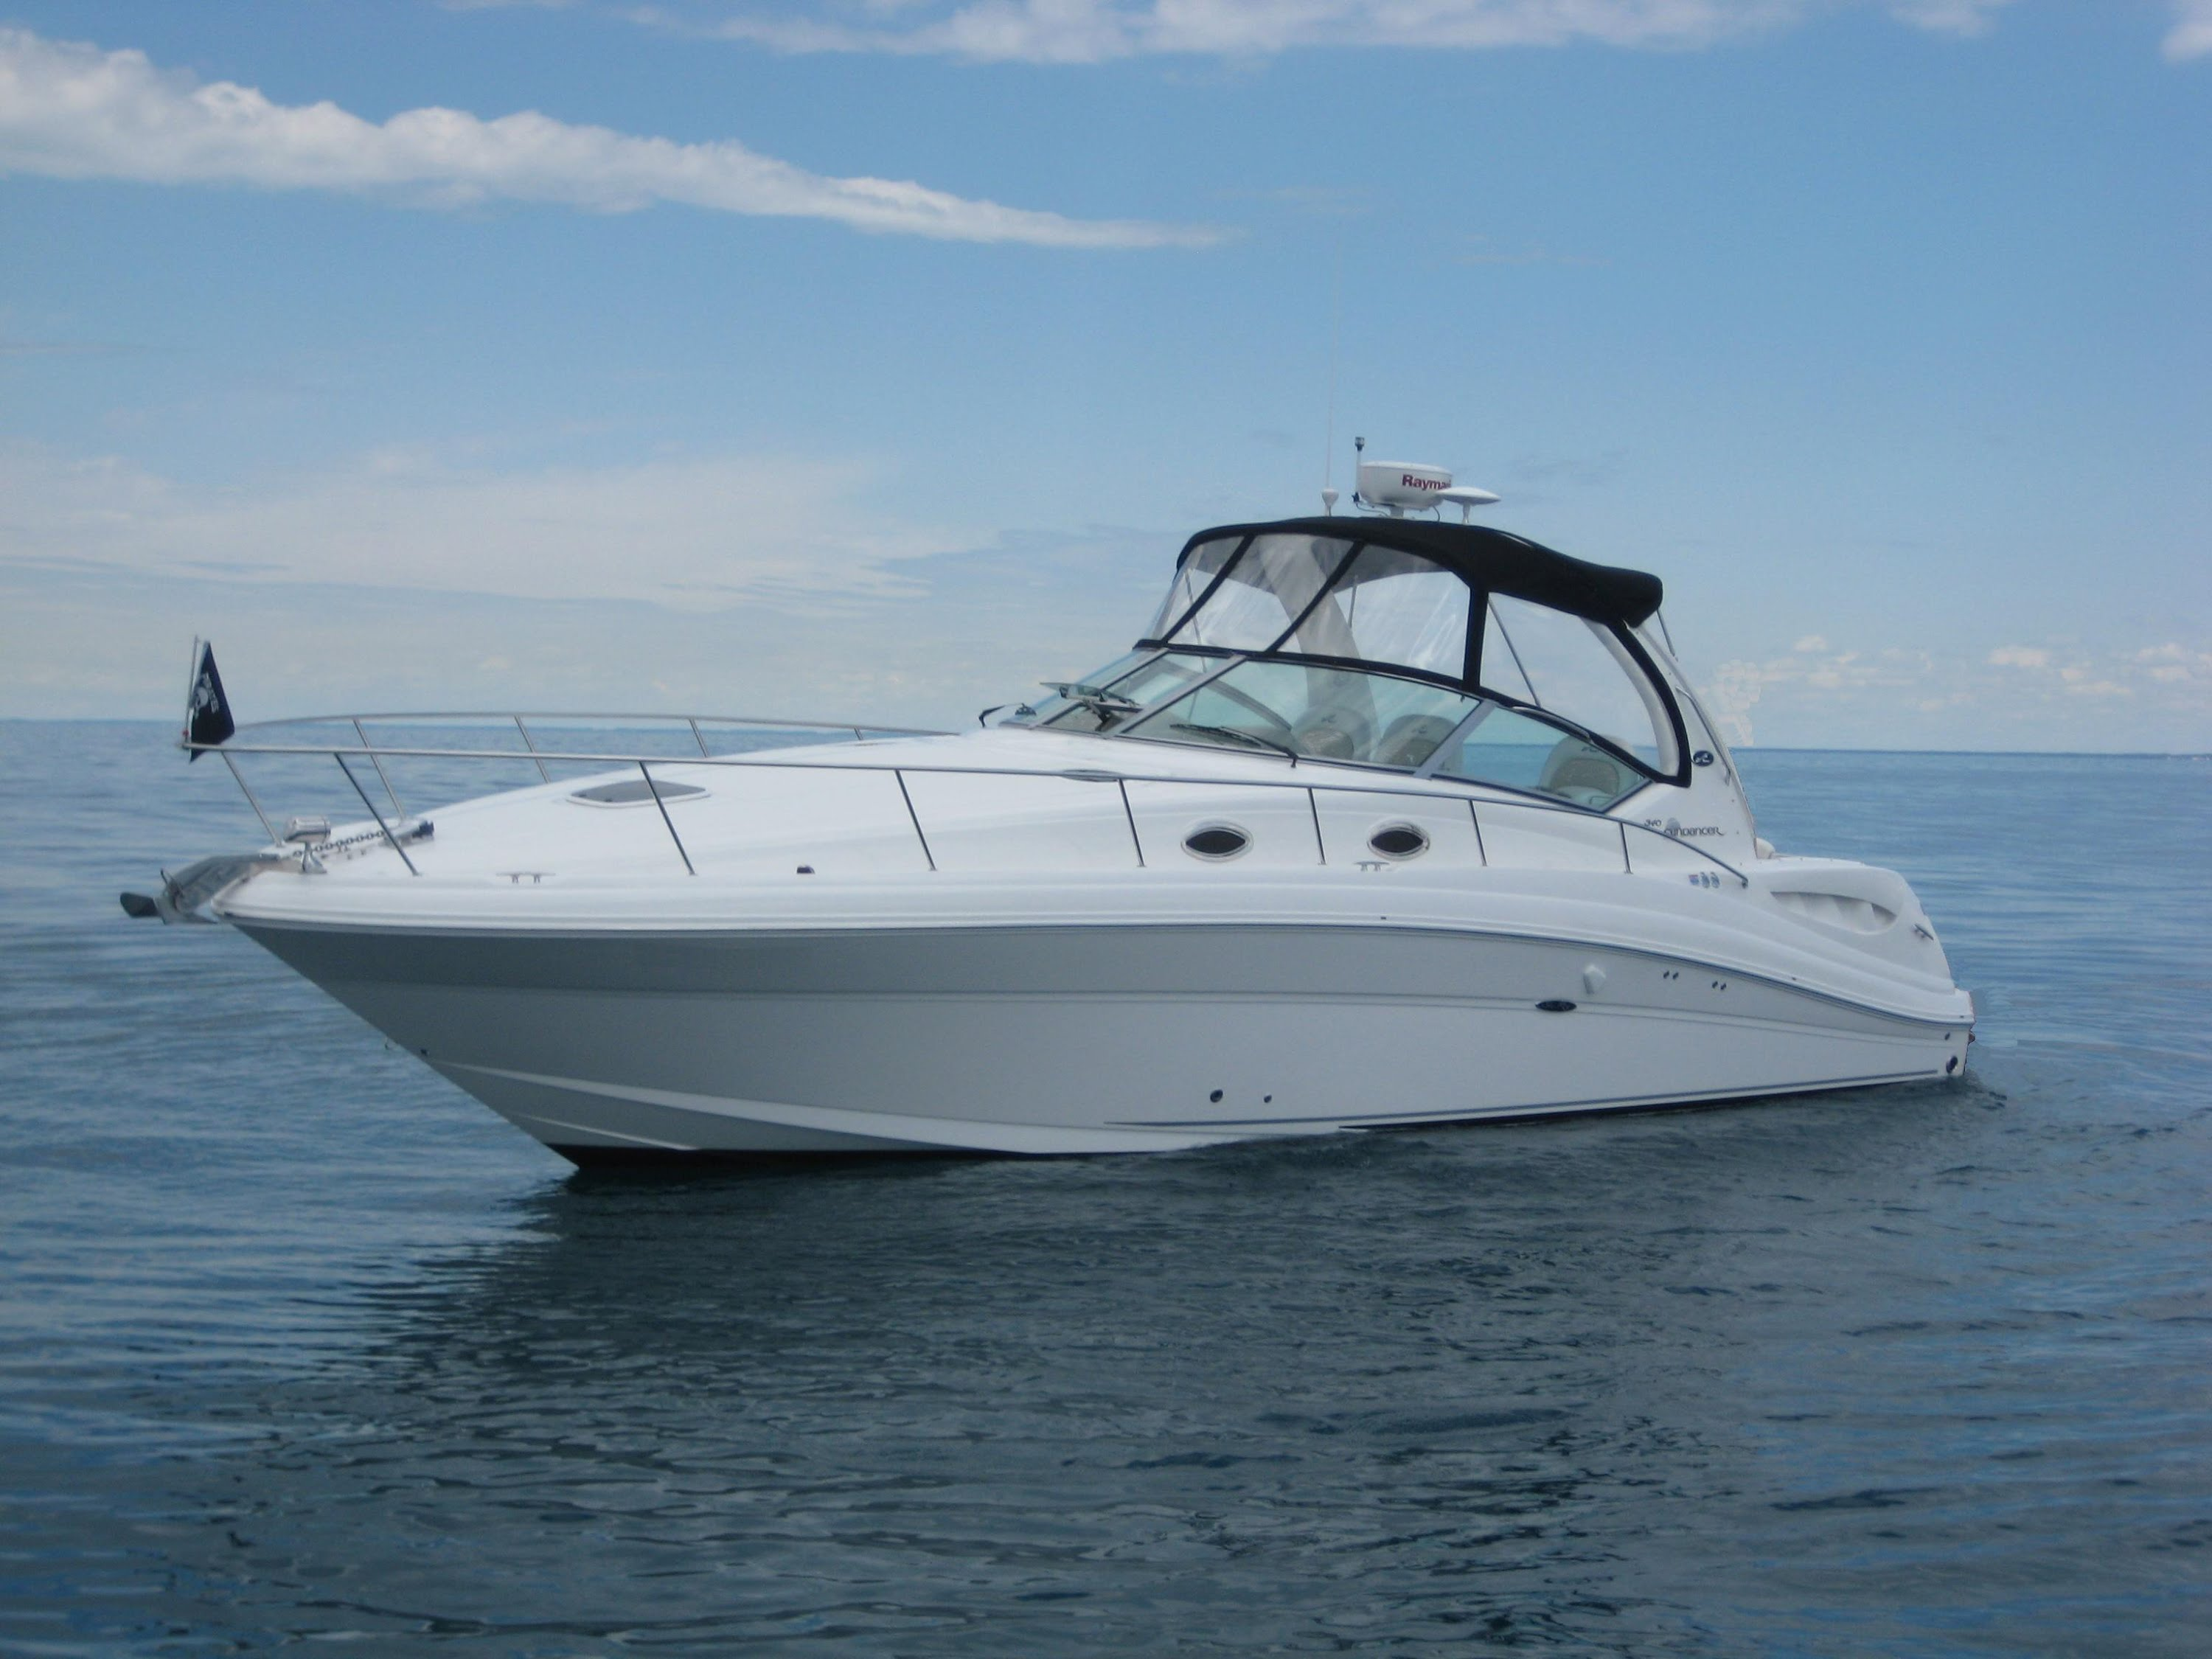 Things You Need to Know About Boat Rental Services